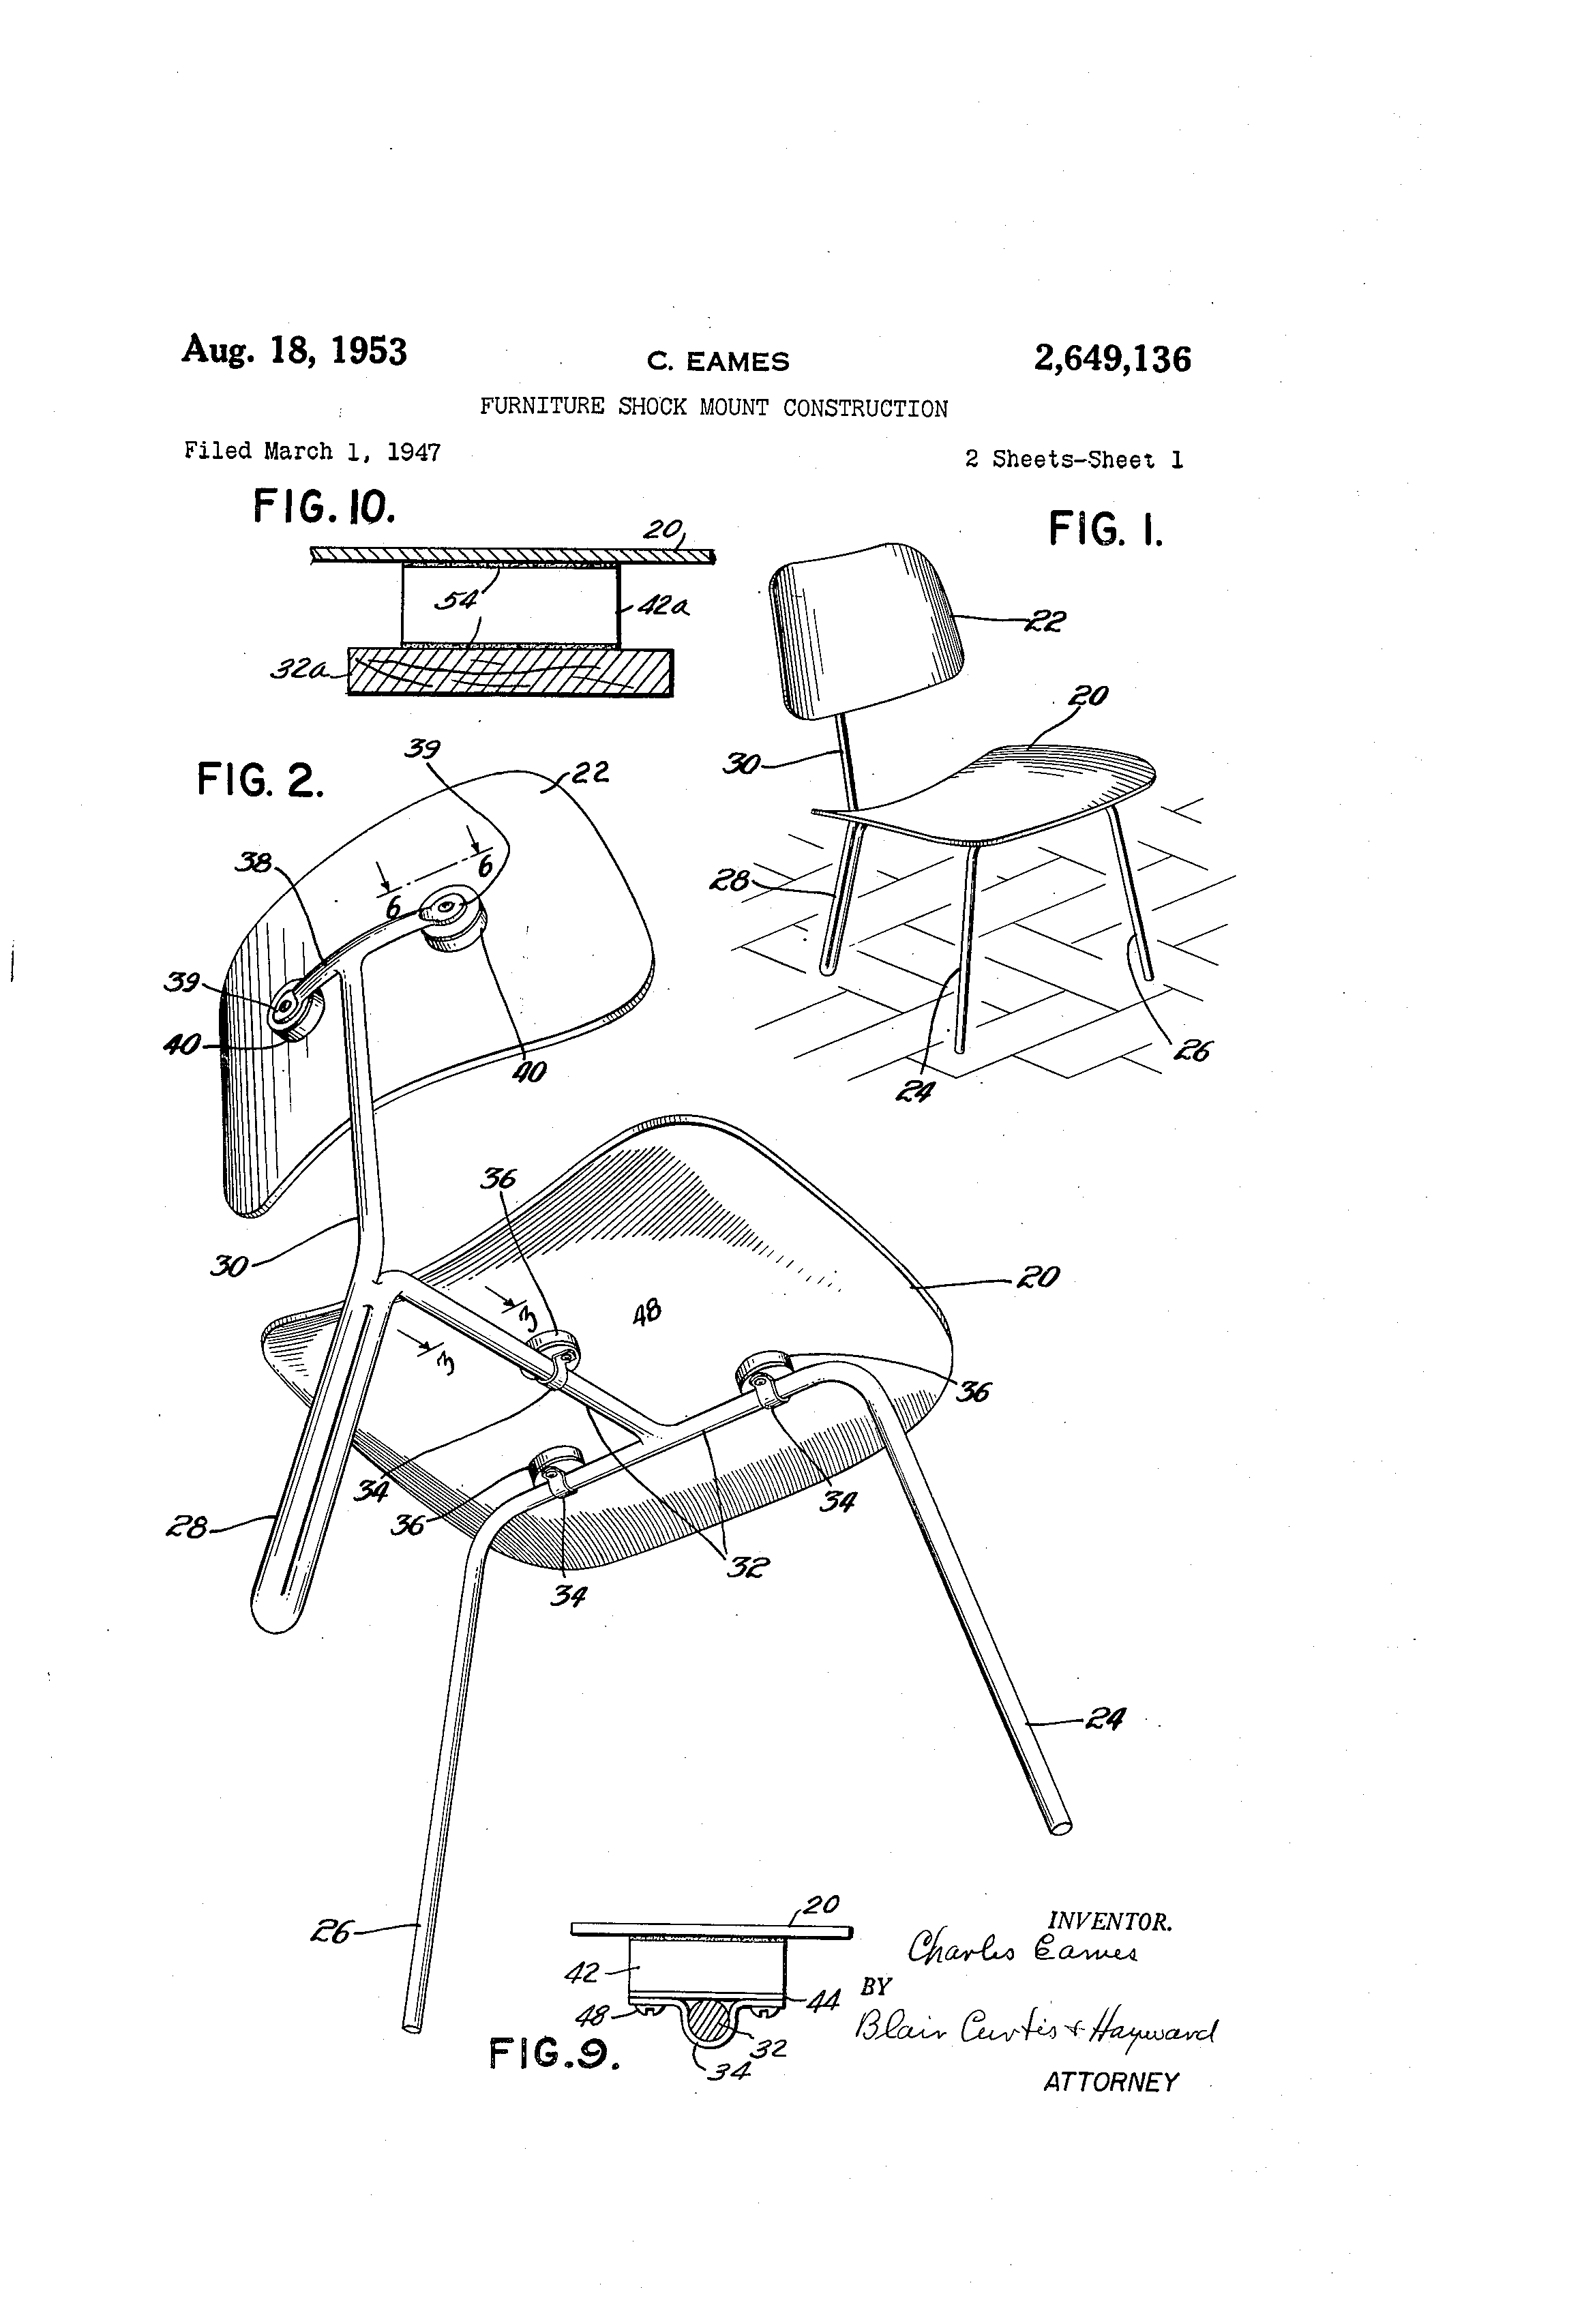 Eames Chair Patent Patent Us2649136 Furniture Shock Mount Construction